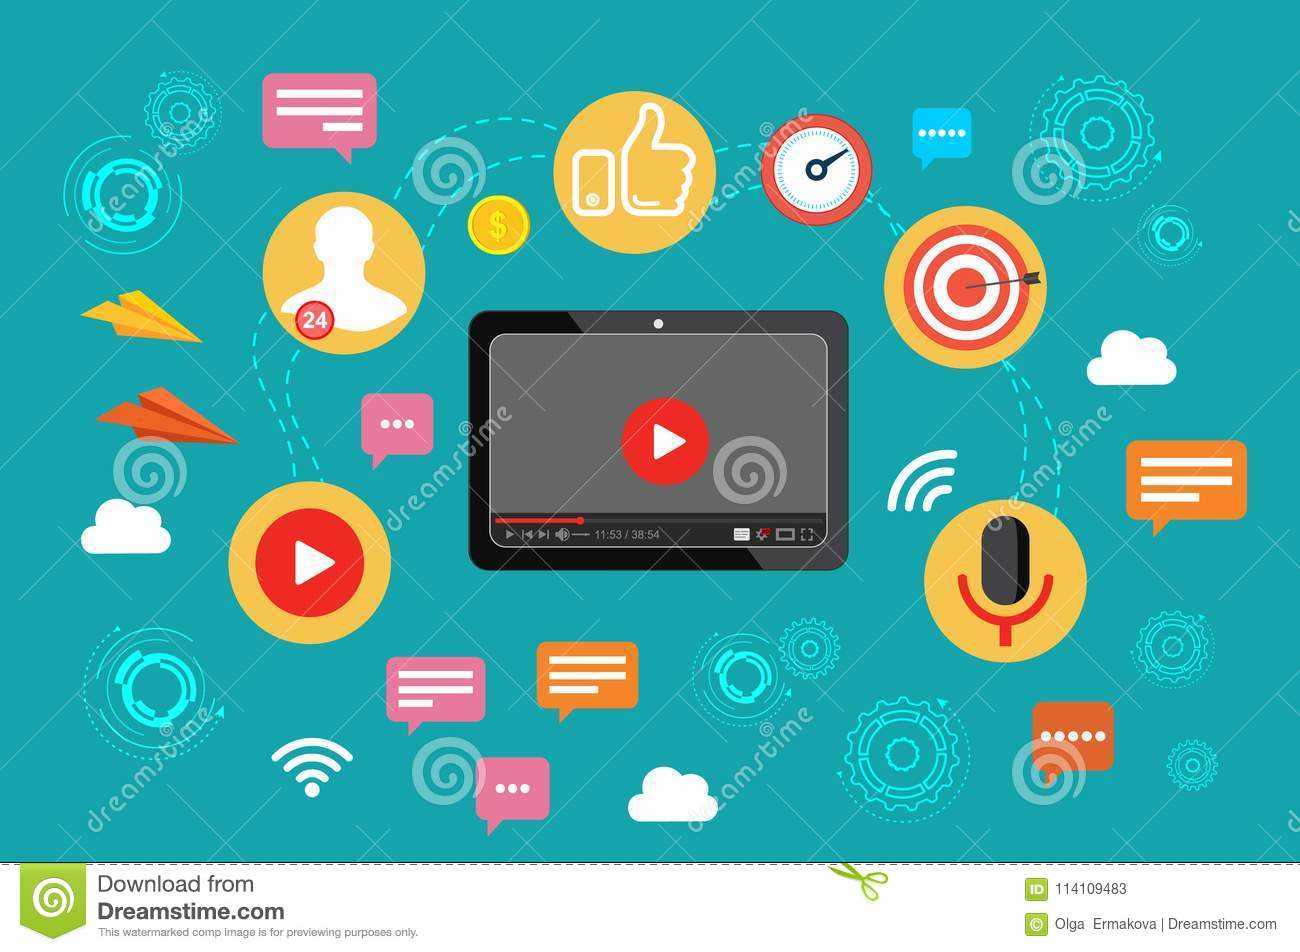 Video. Video broadcast. The concept of video marketing. Vector illustration in flat design.